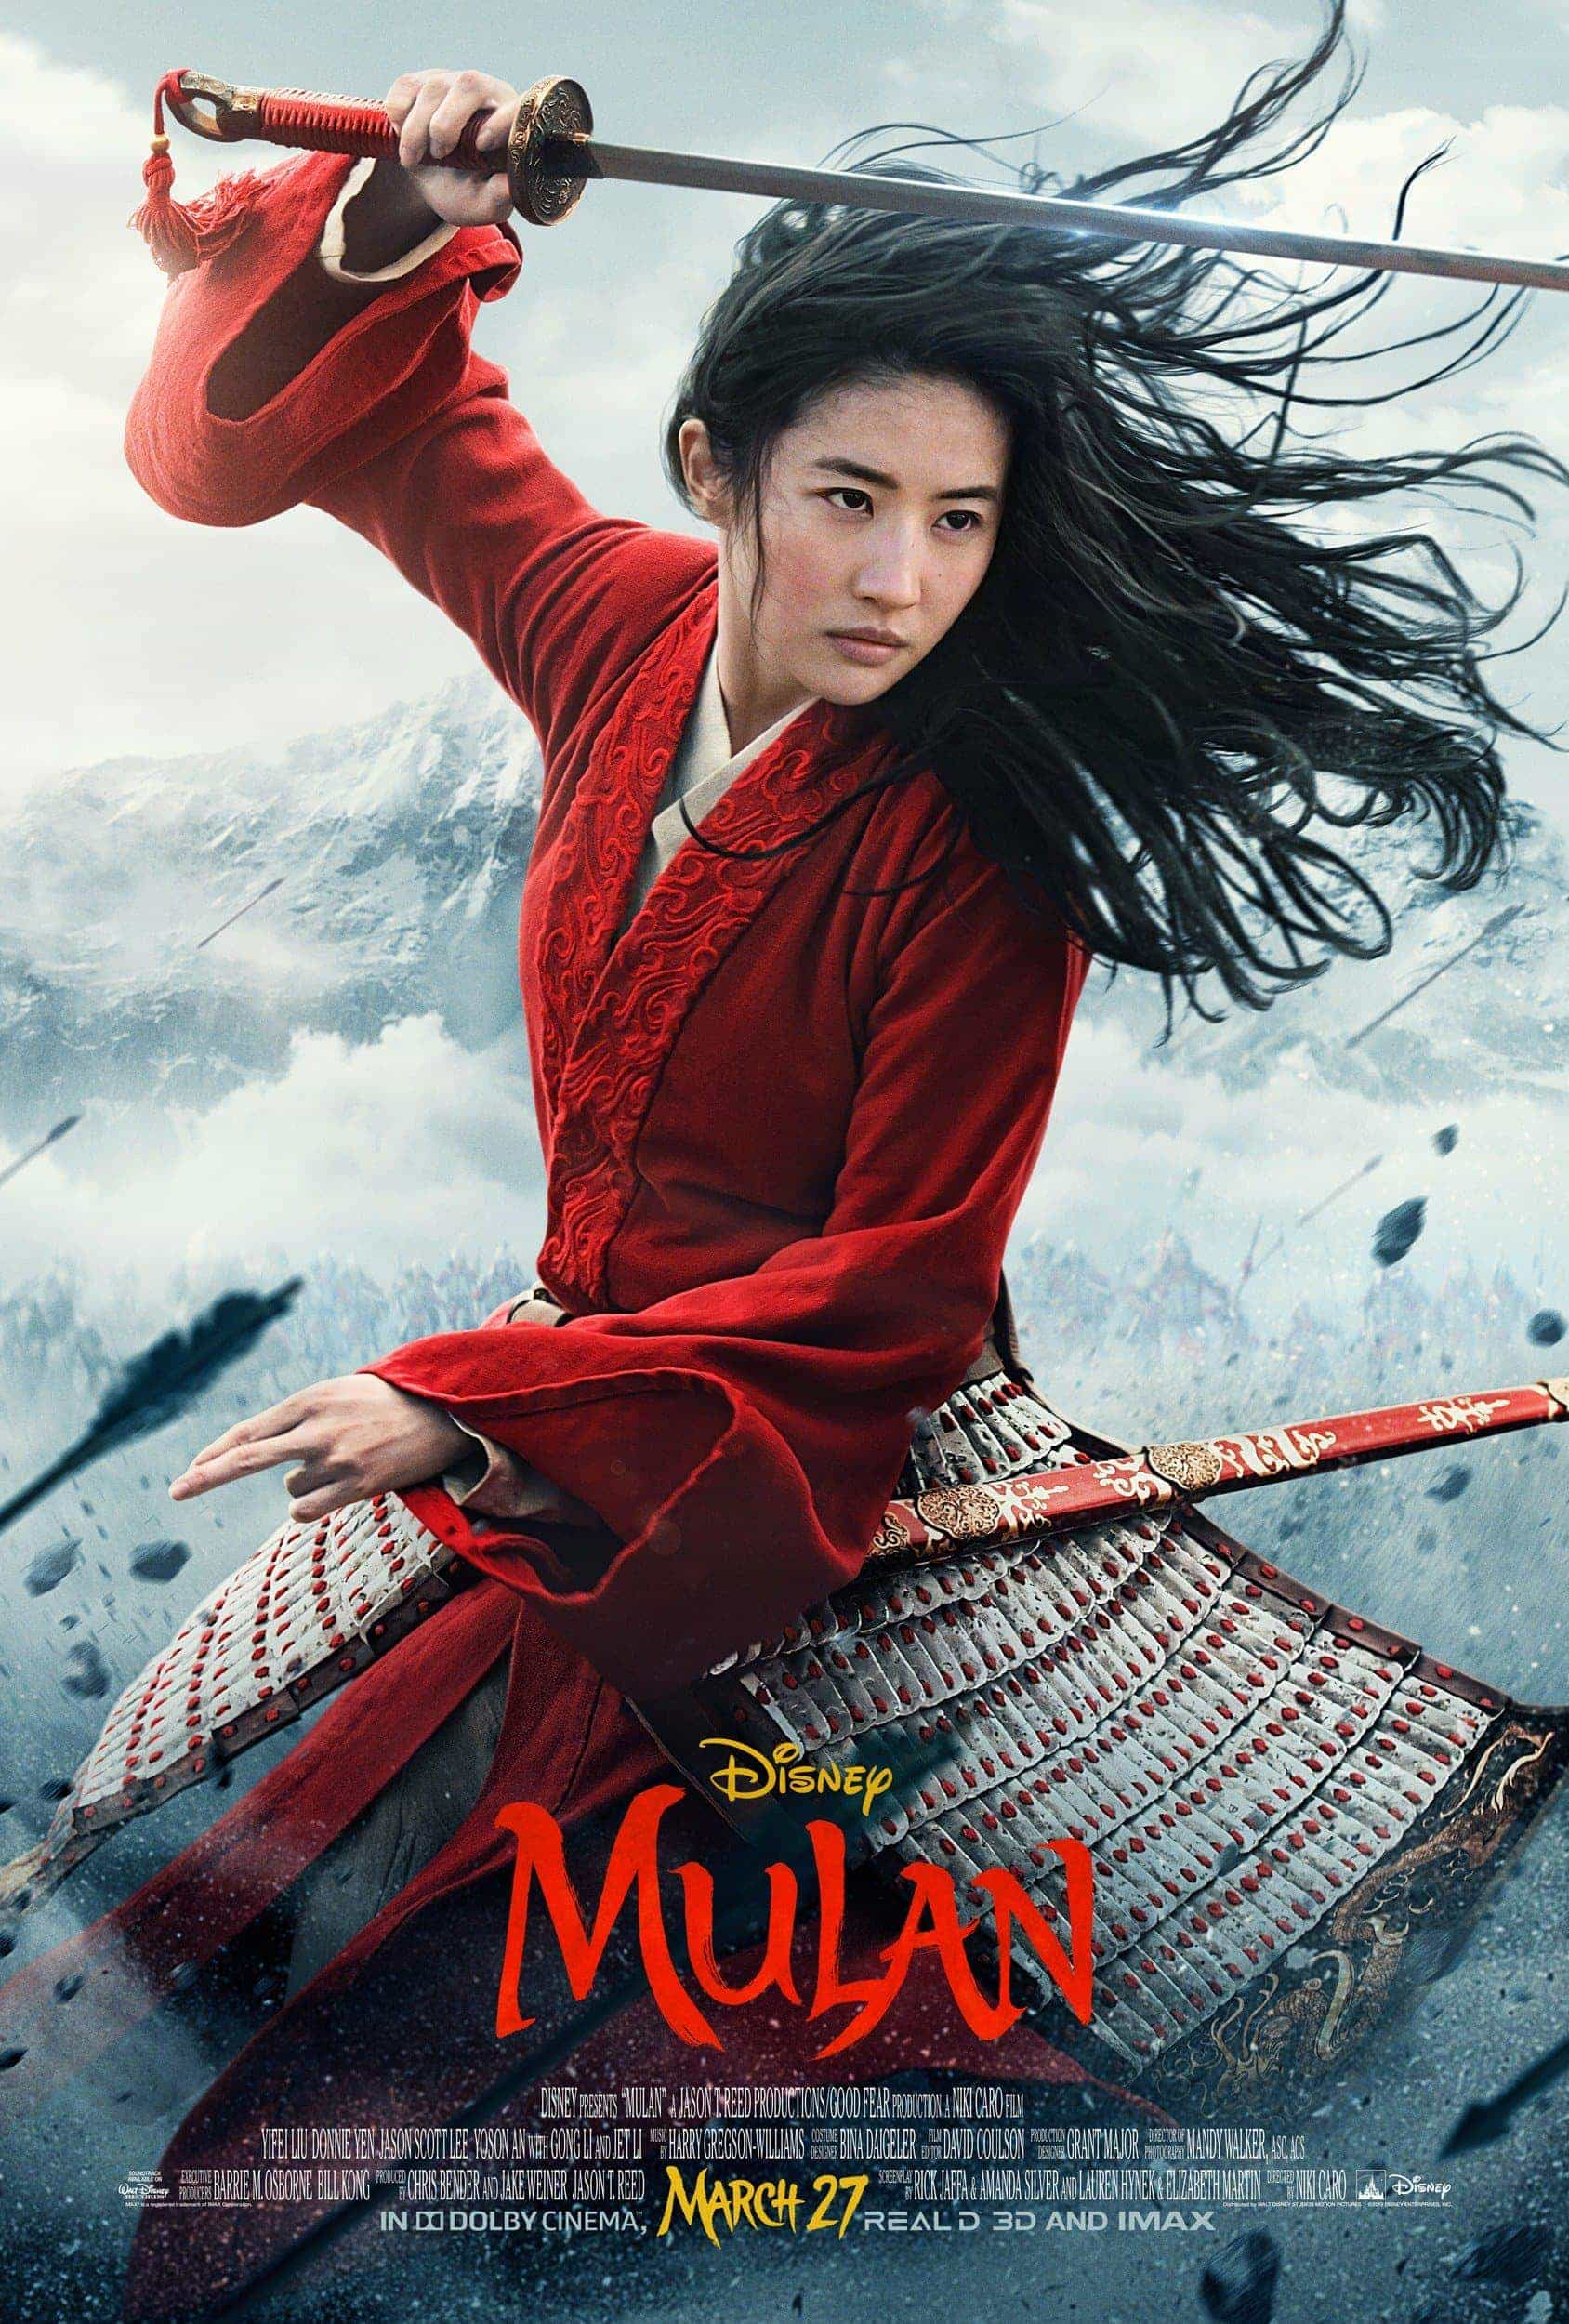 Disney release a new trailer for the live action remake of Mulan